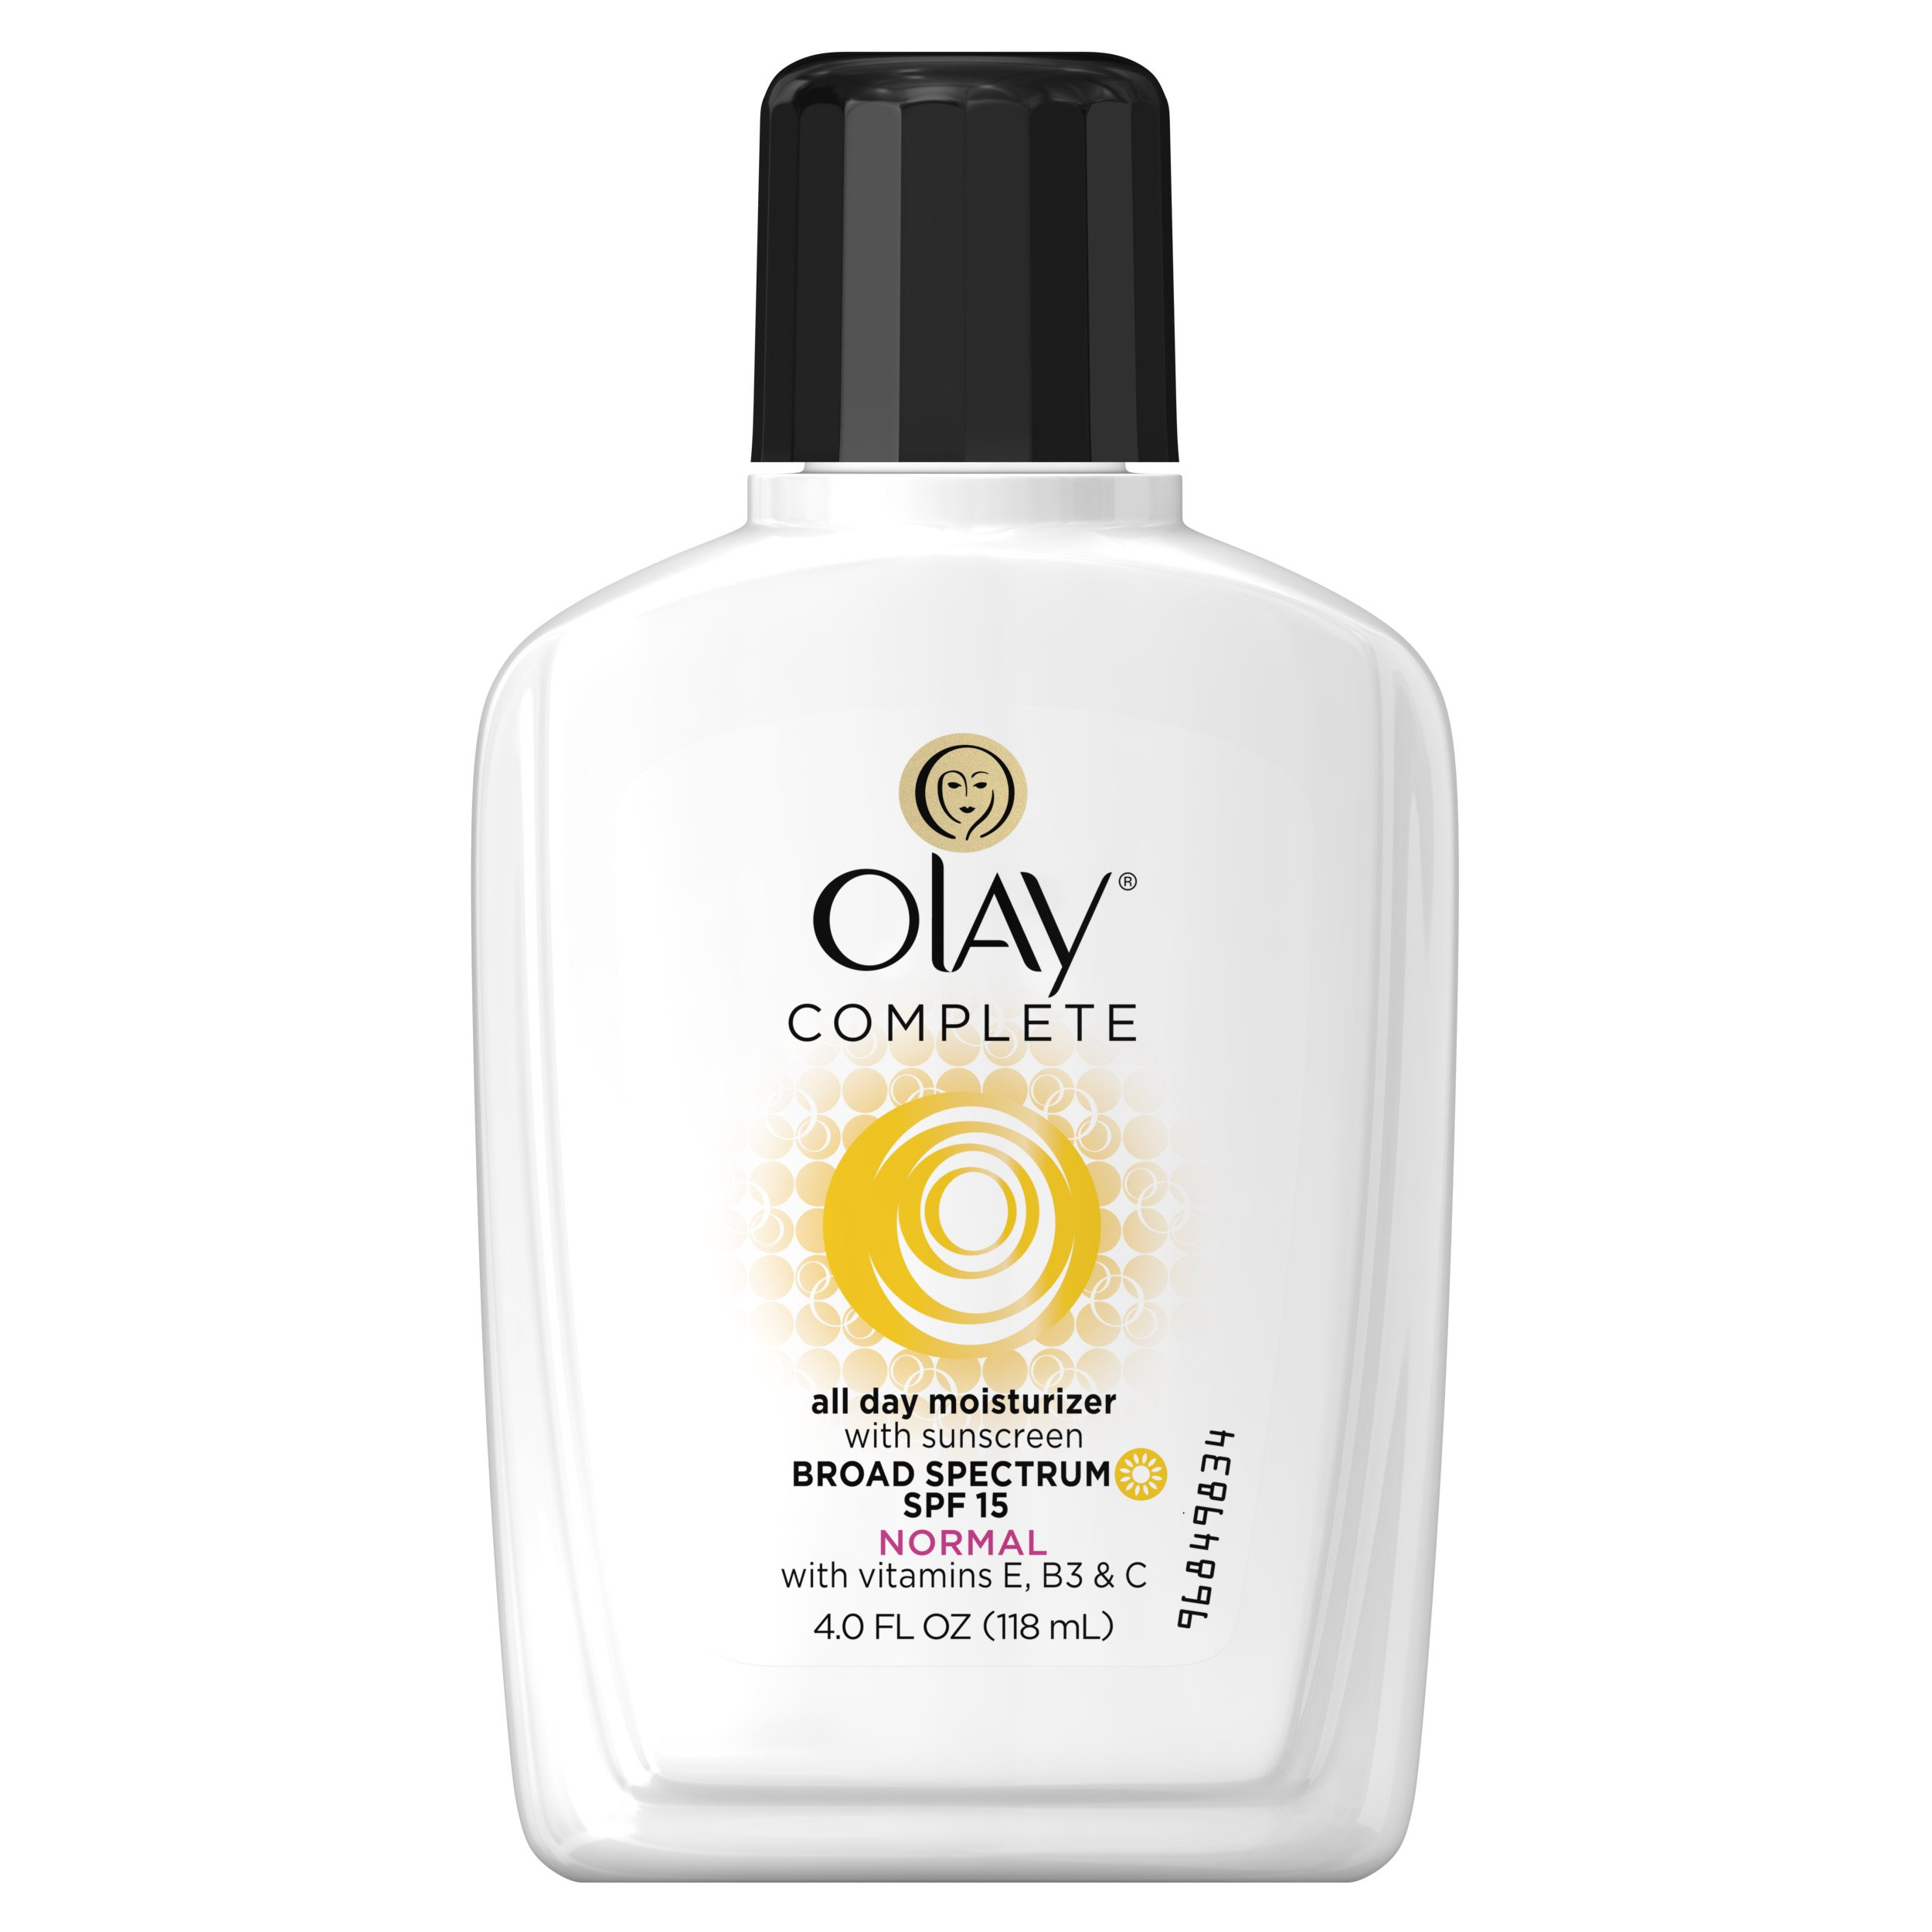 Olay Complete All Day Moisturizer with Broad Spectrum SPF 15 Normal, 4.0 fl oz